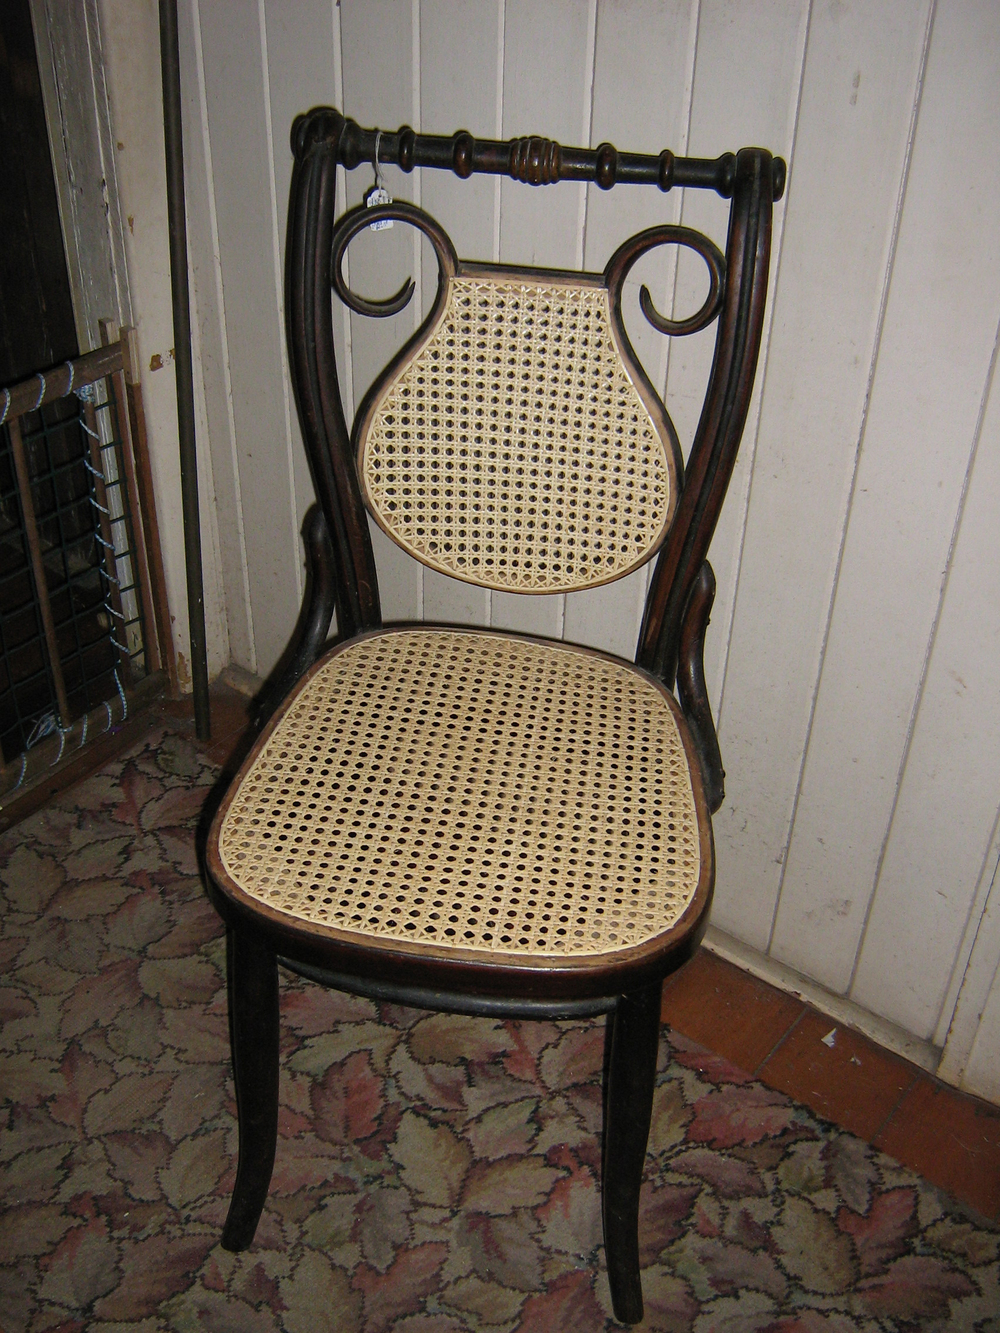 These Two Types Of Chair Seating Look Very Similar, Although They Are  Fitted To The Seat In Very Different Ways. Hand Caned Seating Consists Of  Long Strands ...